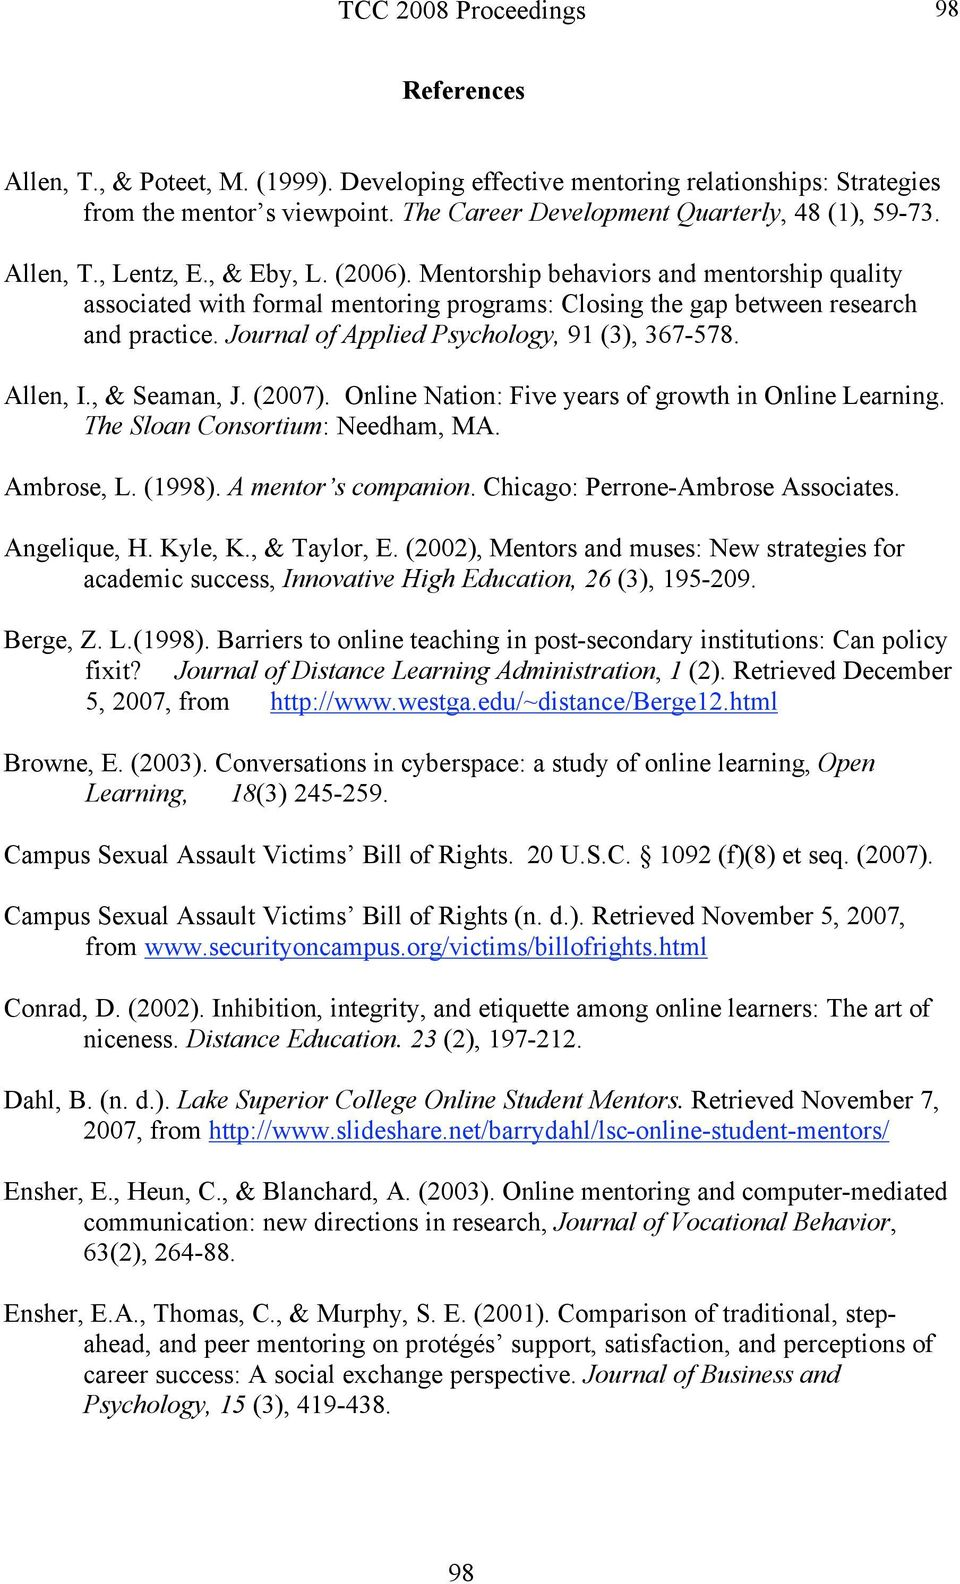 Journal of Applied Psychology, 91 (3), 367-578. Allen, I., & Seaman, J. (2007). Online Nation: Five years of growth in Online Learning. The Sloan Consortium: Needham, MA. Ambrose, L. (1998).